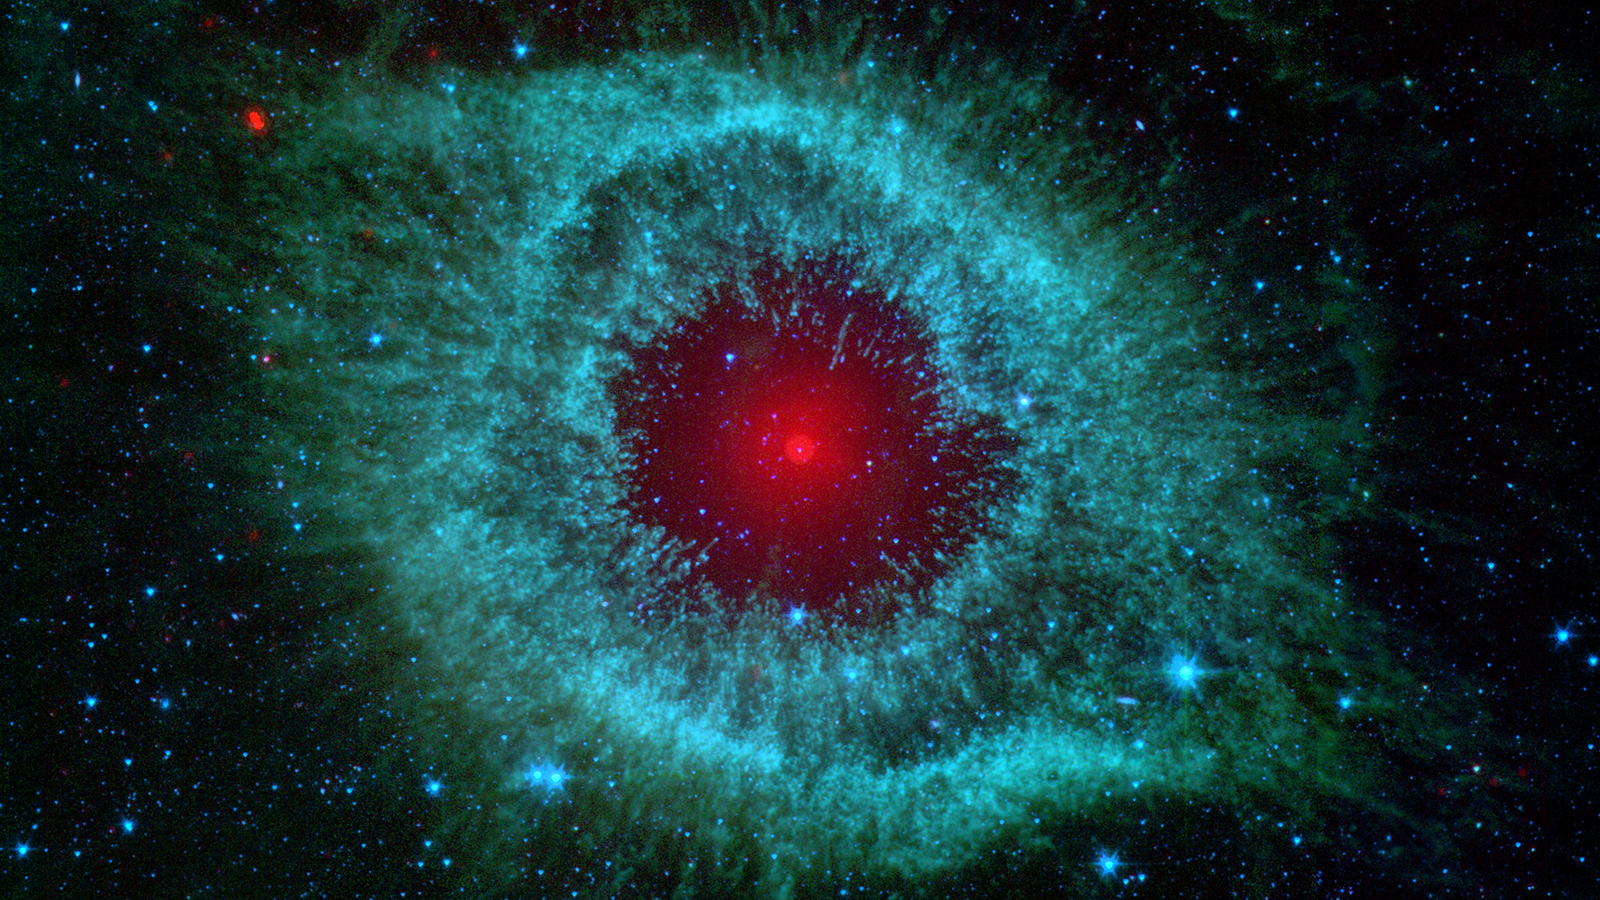 A giant red star is surrounded by an almond-shaped burst of green stellar dust, appearing like the pupil and iris of a human eye.